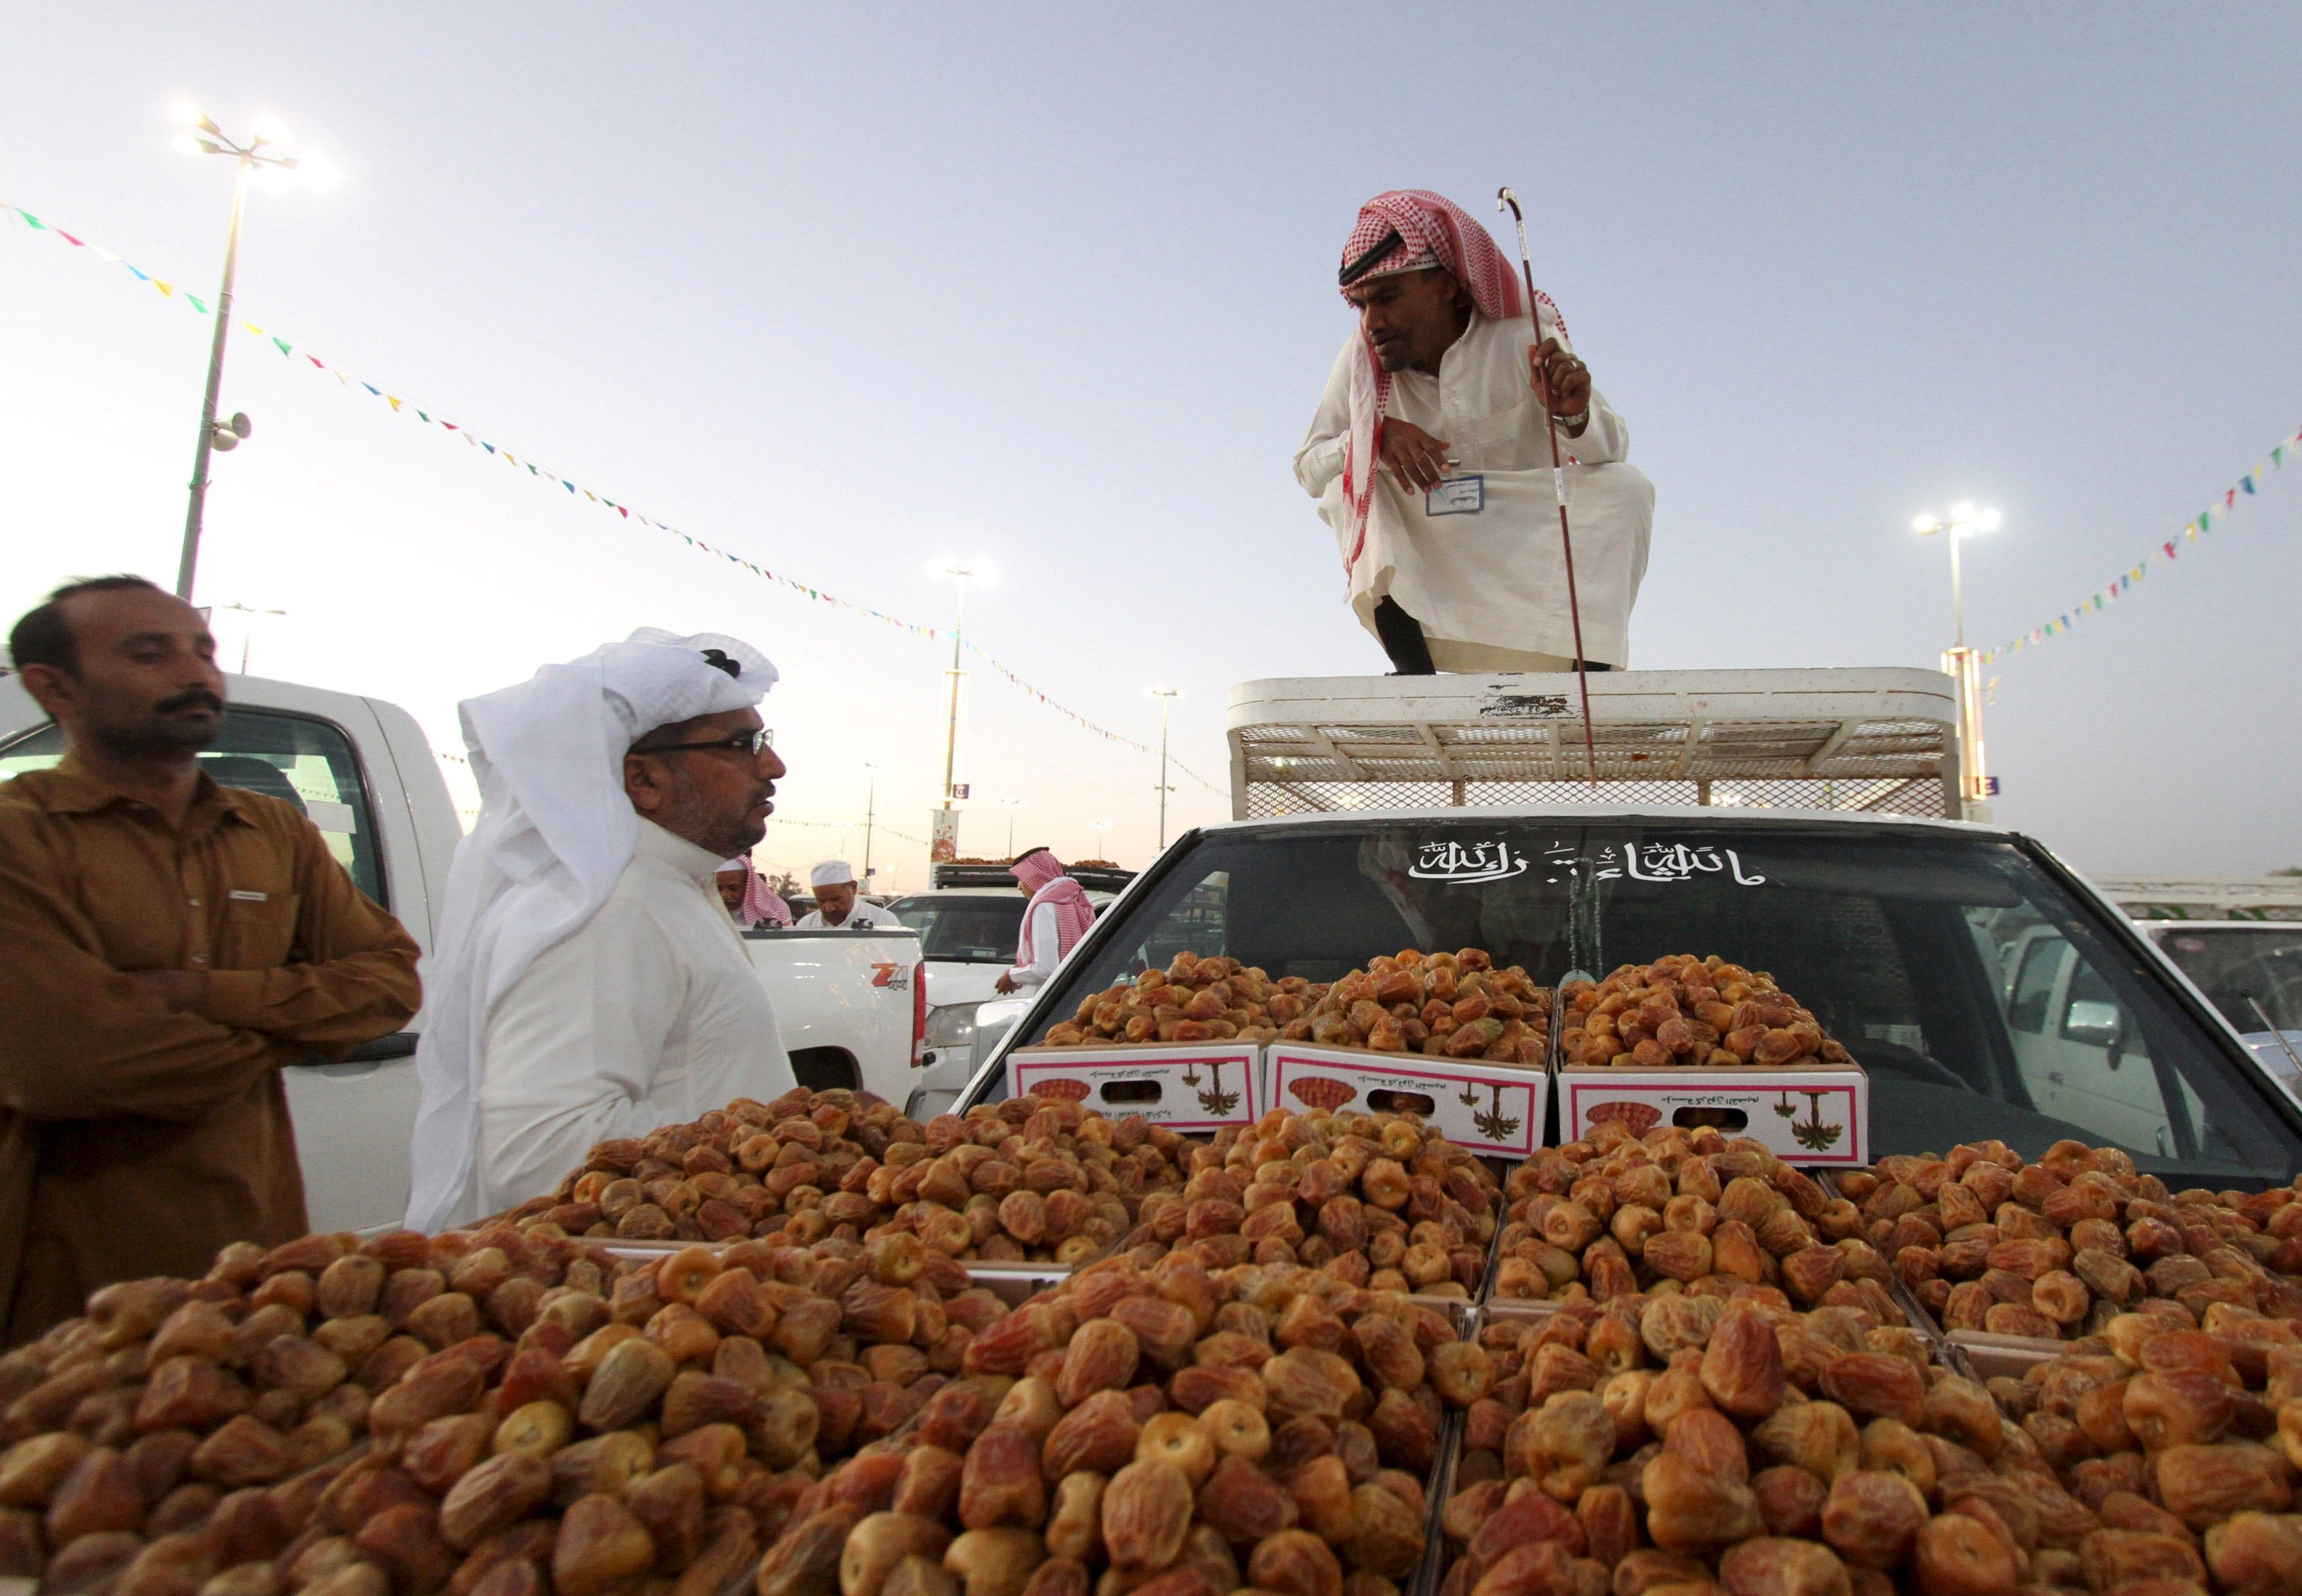 A day at the Saudi dates festival